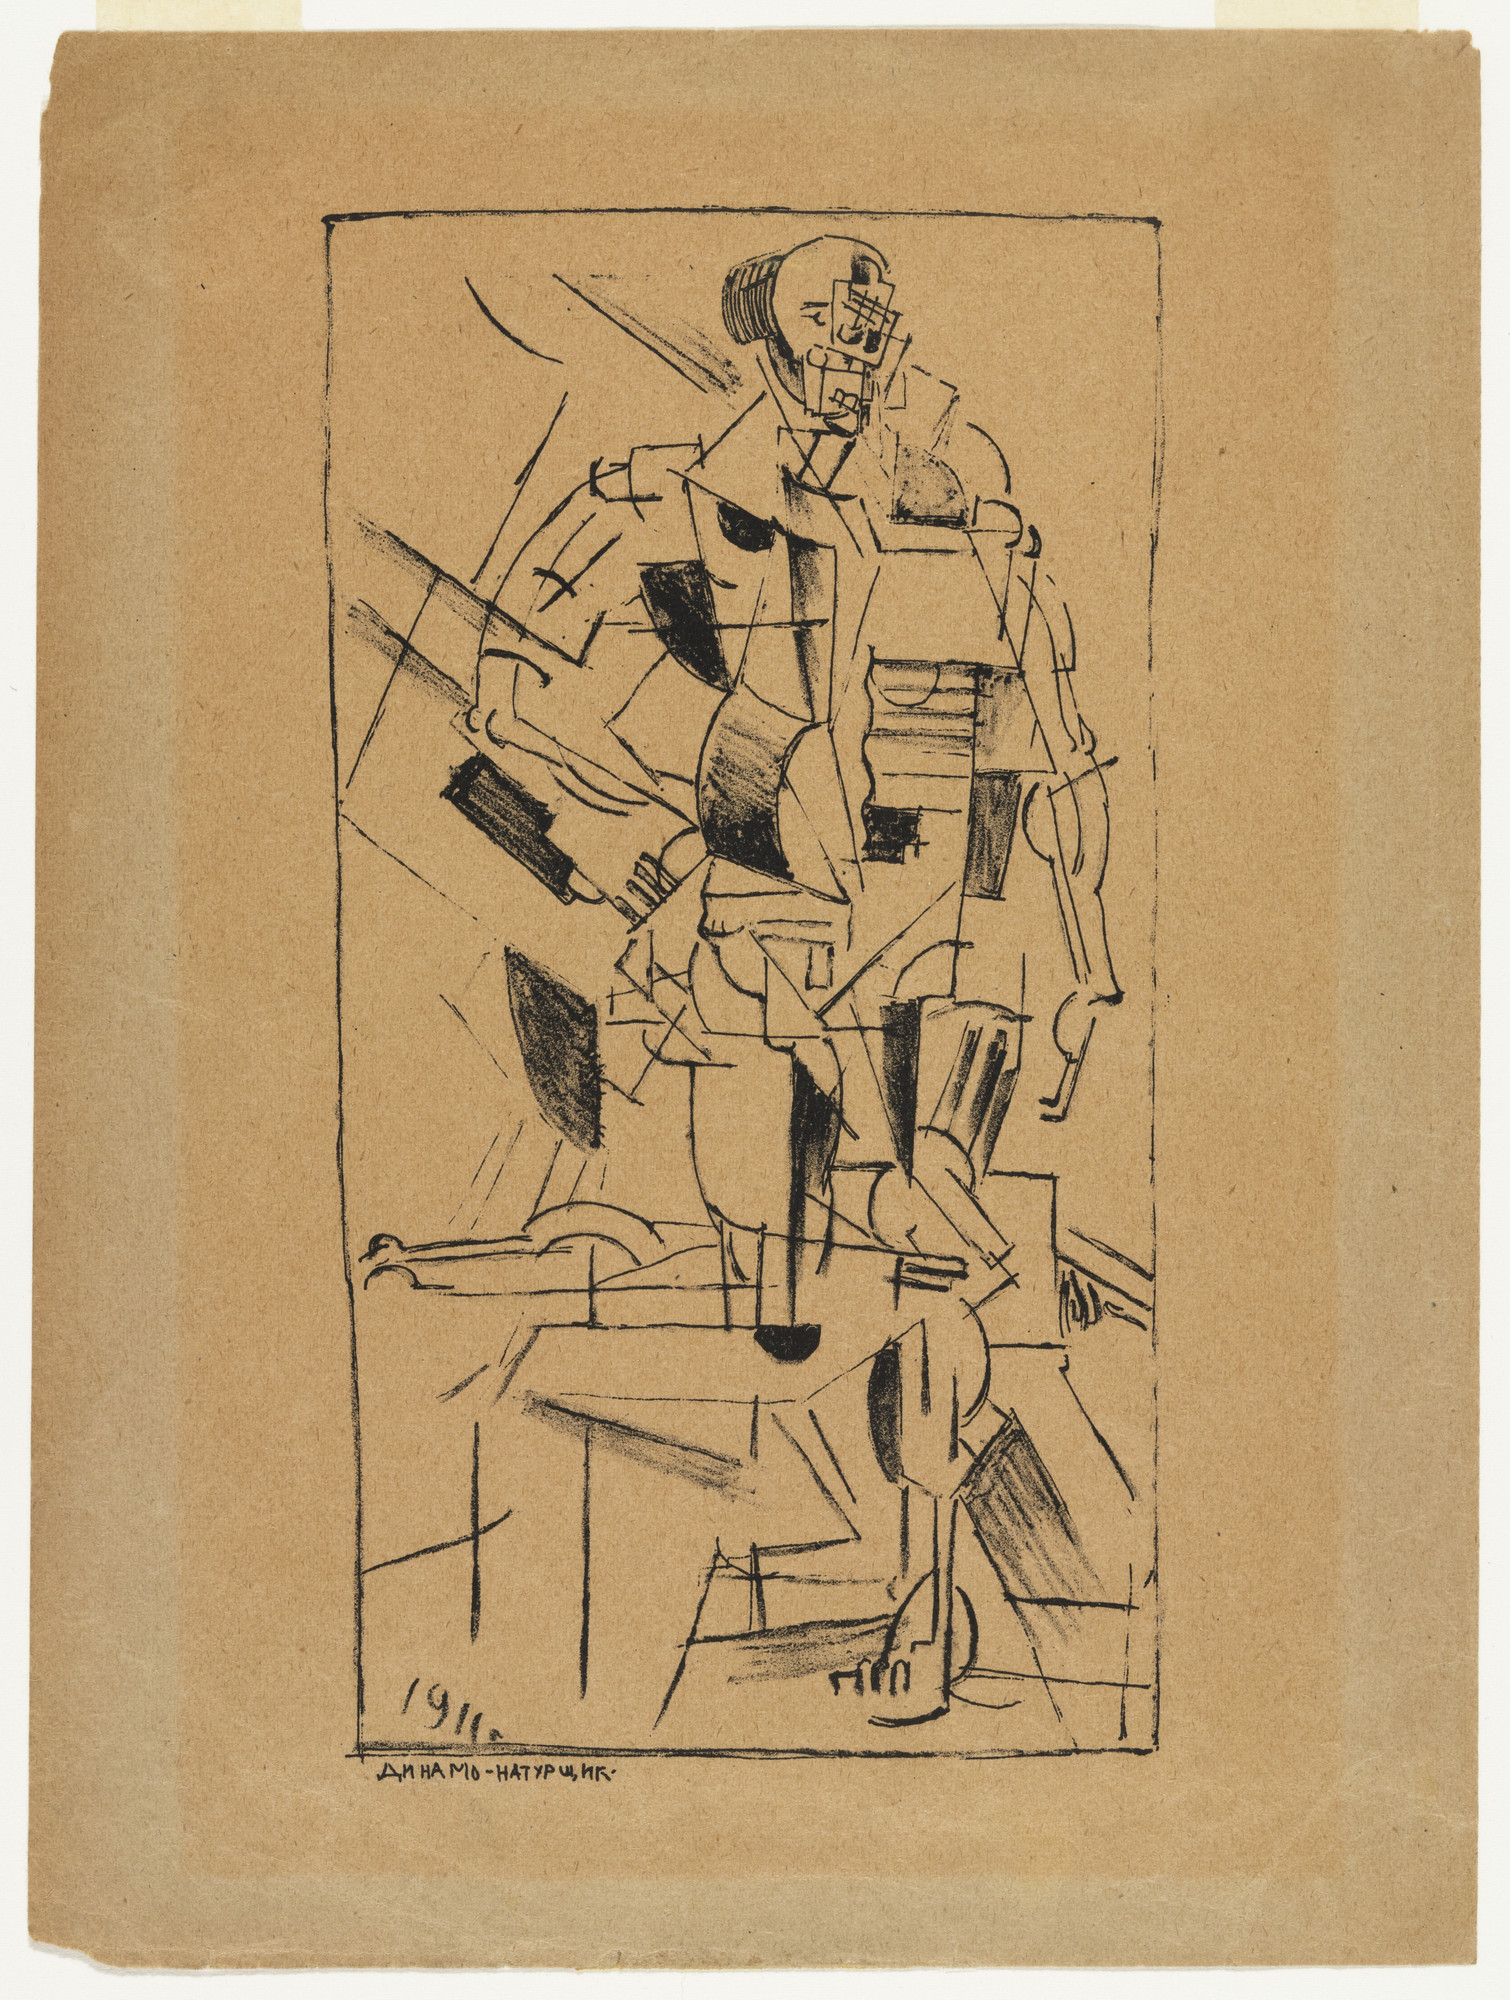 Kazimir Malevich. Dynamic Figure from On New Systems in Art (O Novykh Sistemakh V Iskusstve). 1911